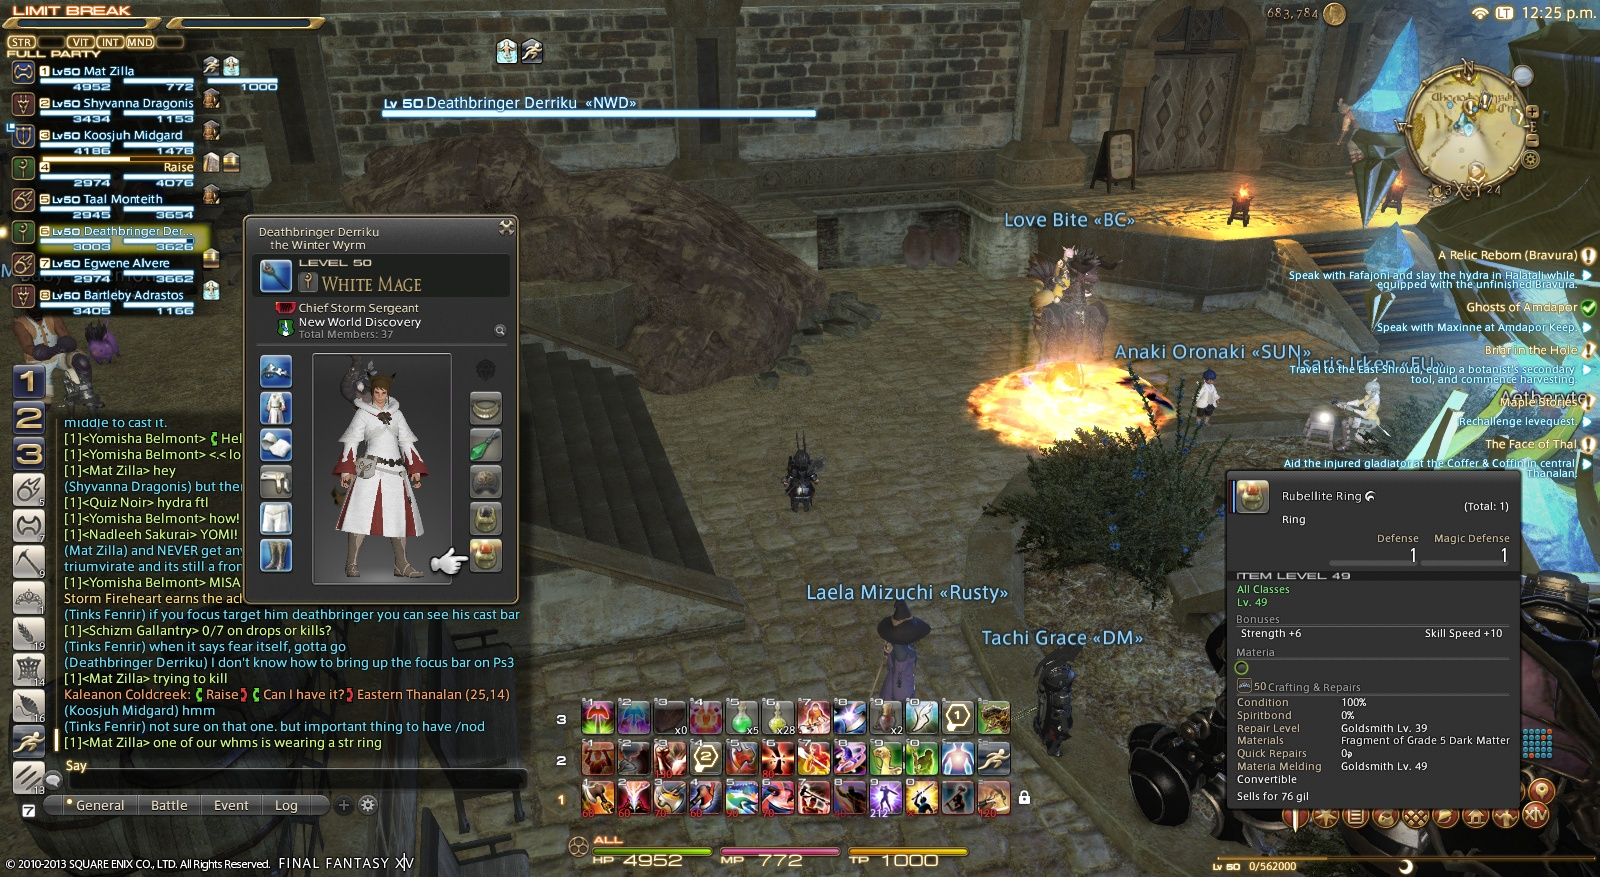 fondue ffxiv slots upgrade same probably comparable cost myth with information reborn relic1 because king weapon relic